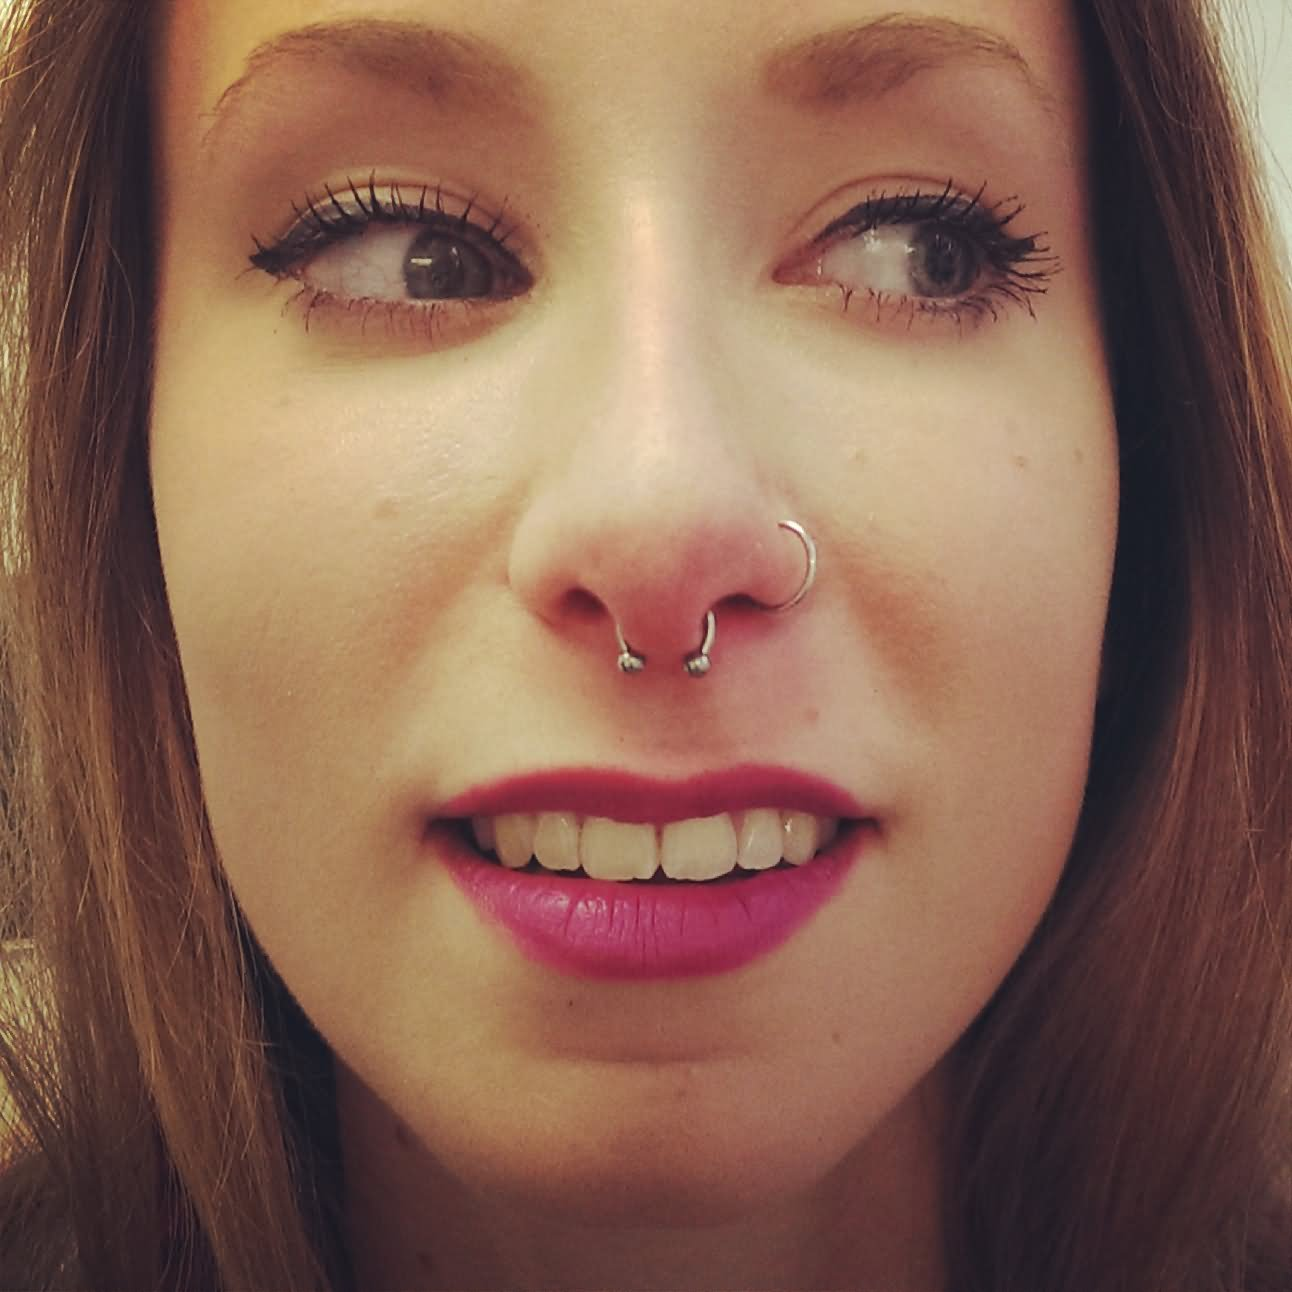 Left Nostril And Septum Piercing Image